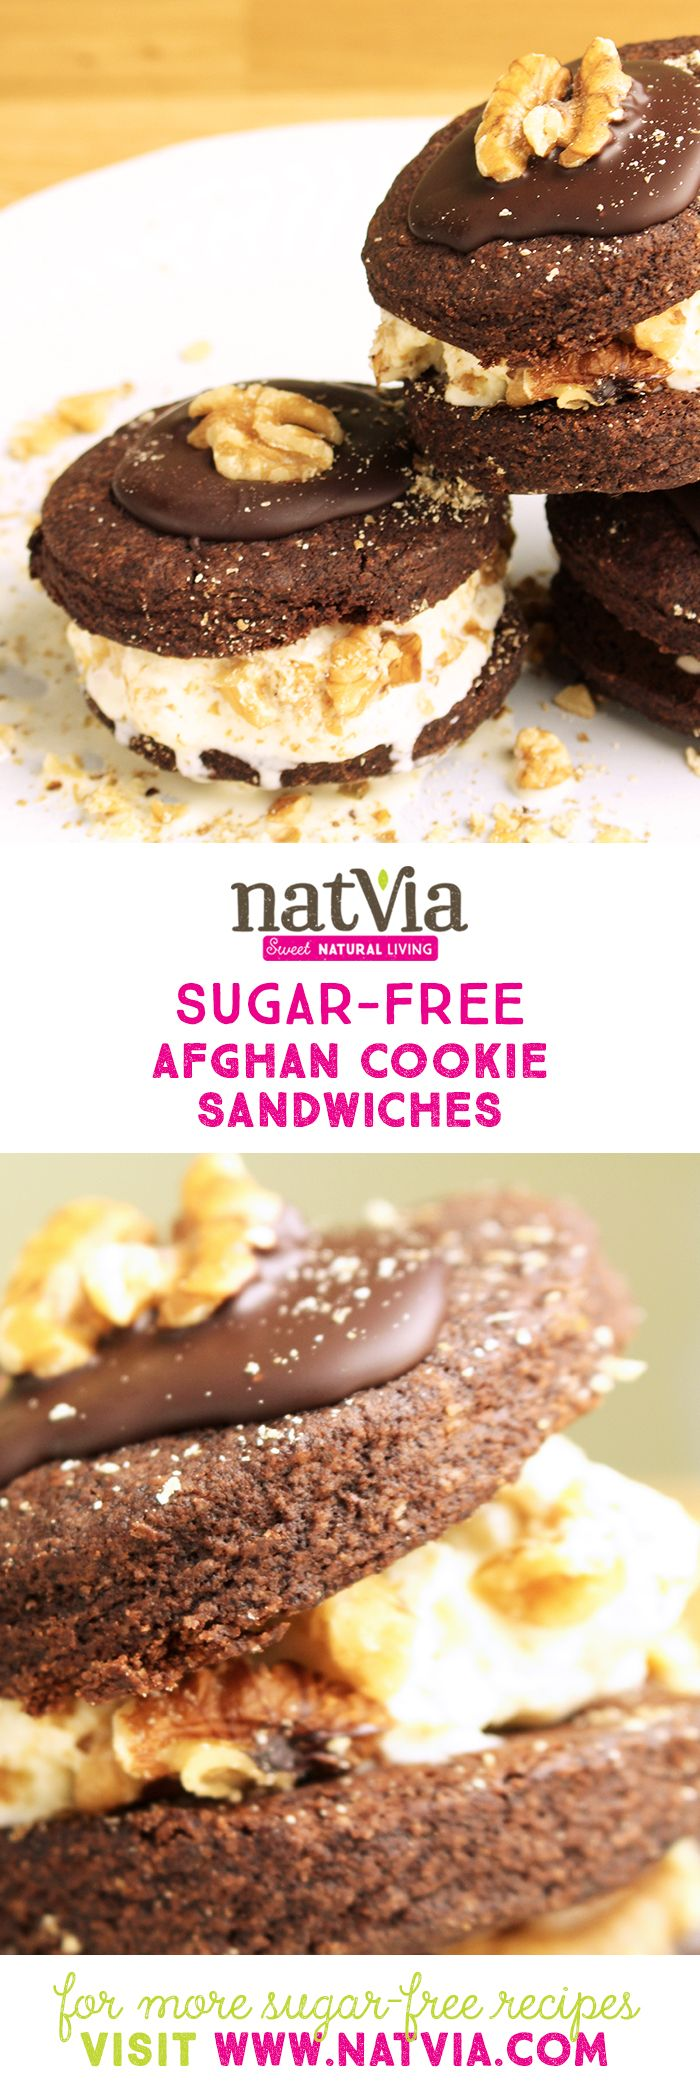 These Afghan #Cookie Ice Cream #Sandwiches have come just in time for #summer and are the ultimate cool-down treat. #sugarfree #natvia #healthy